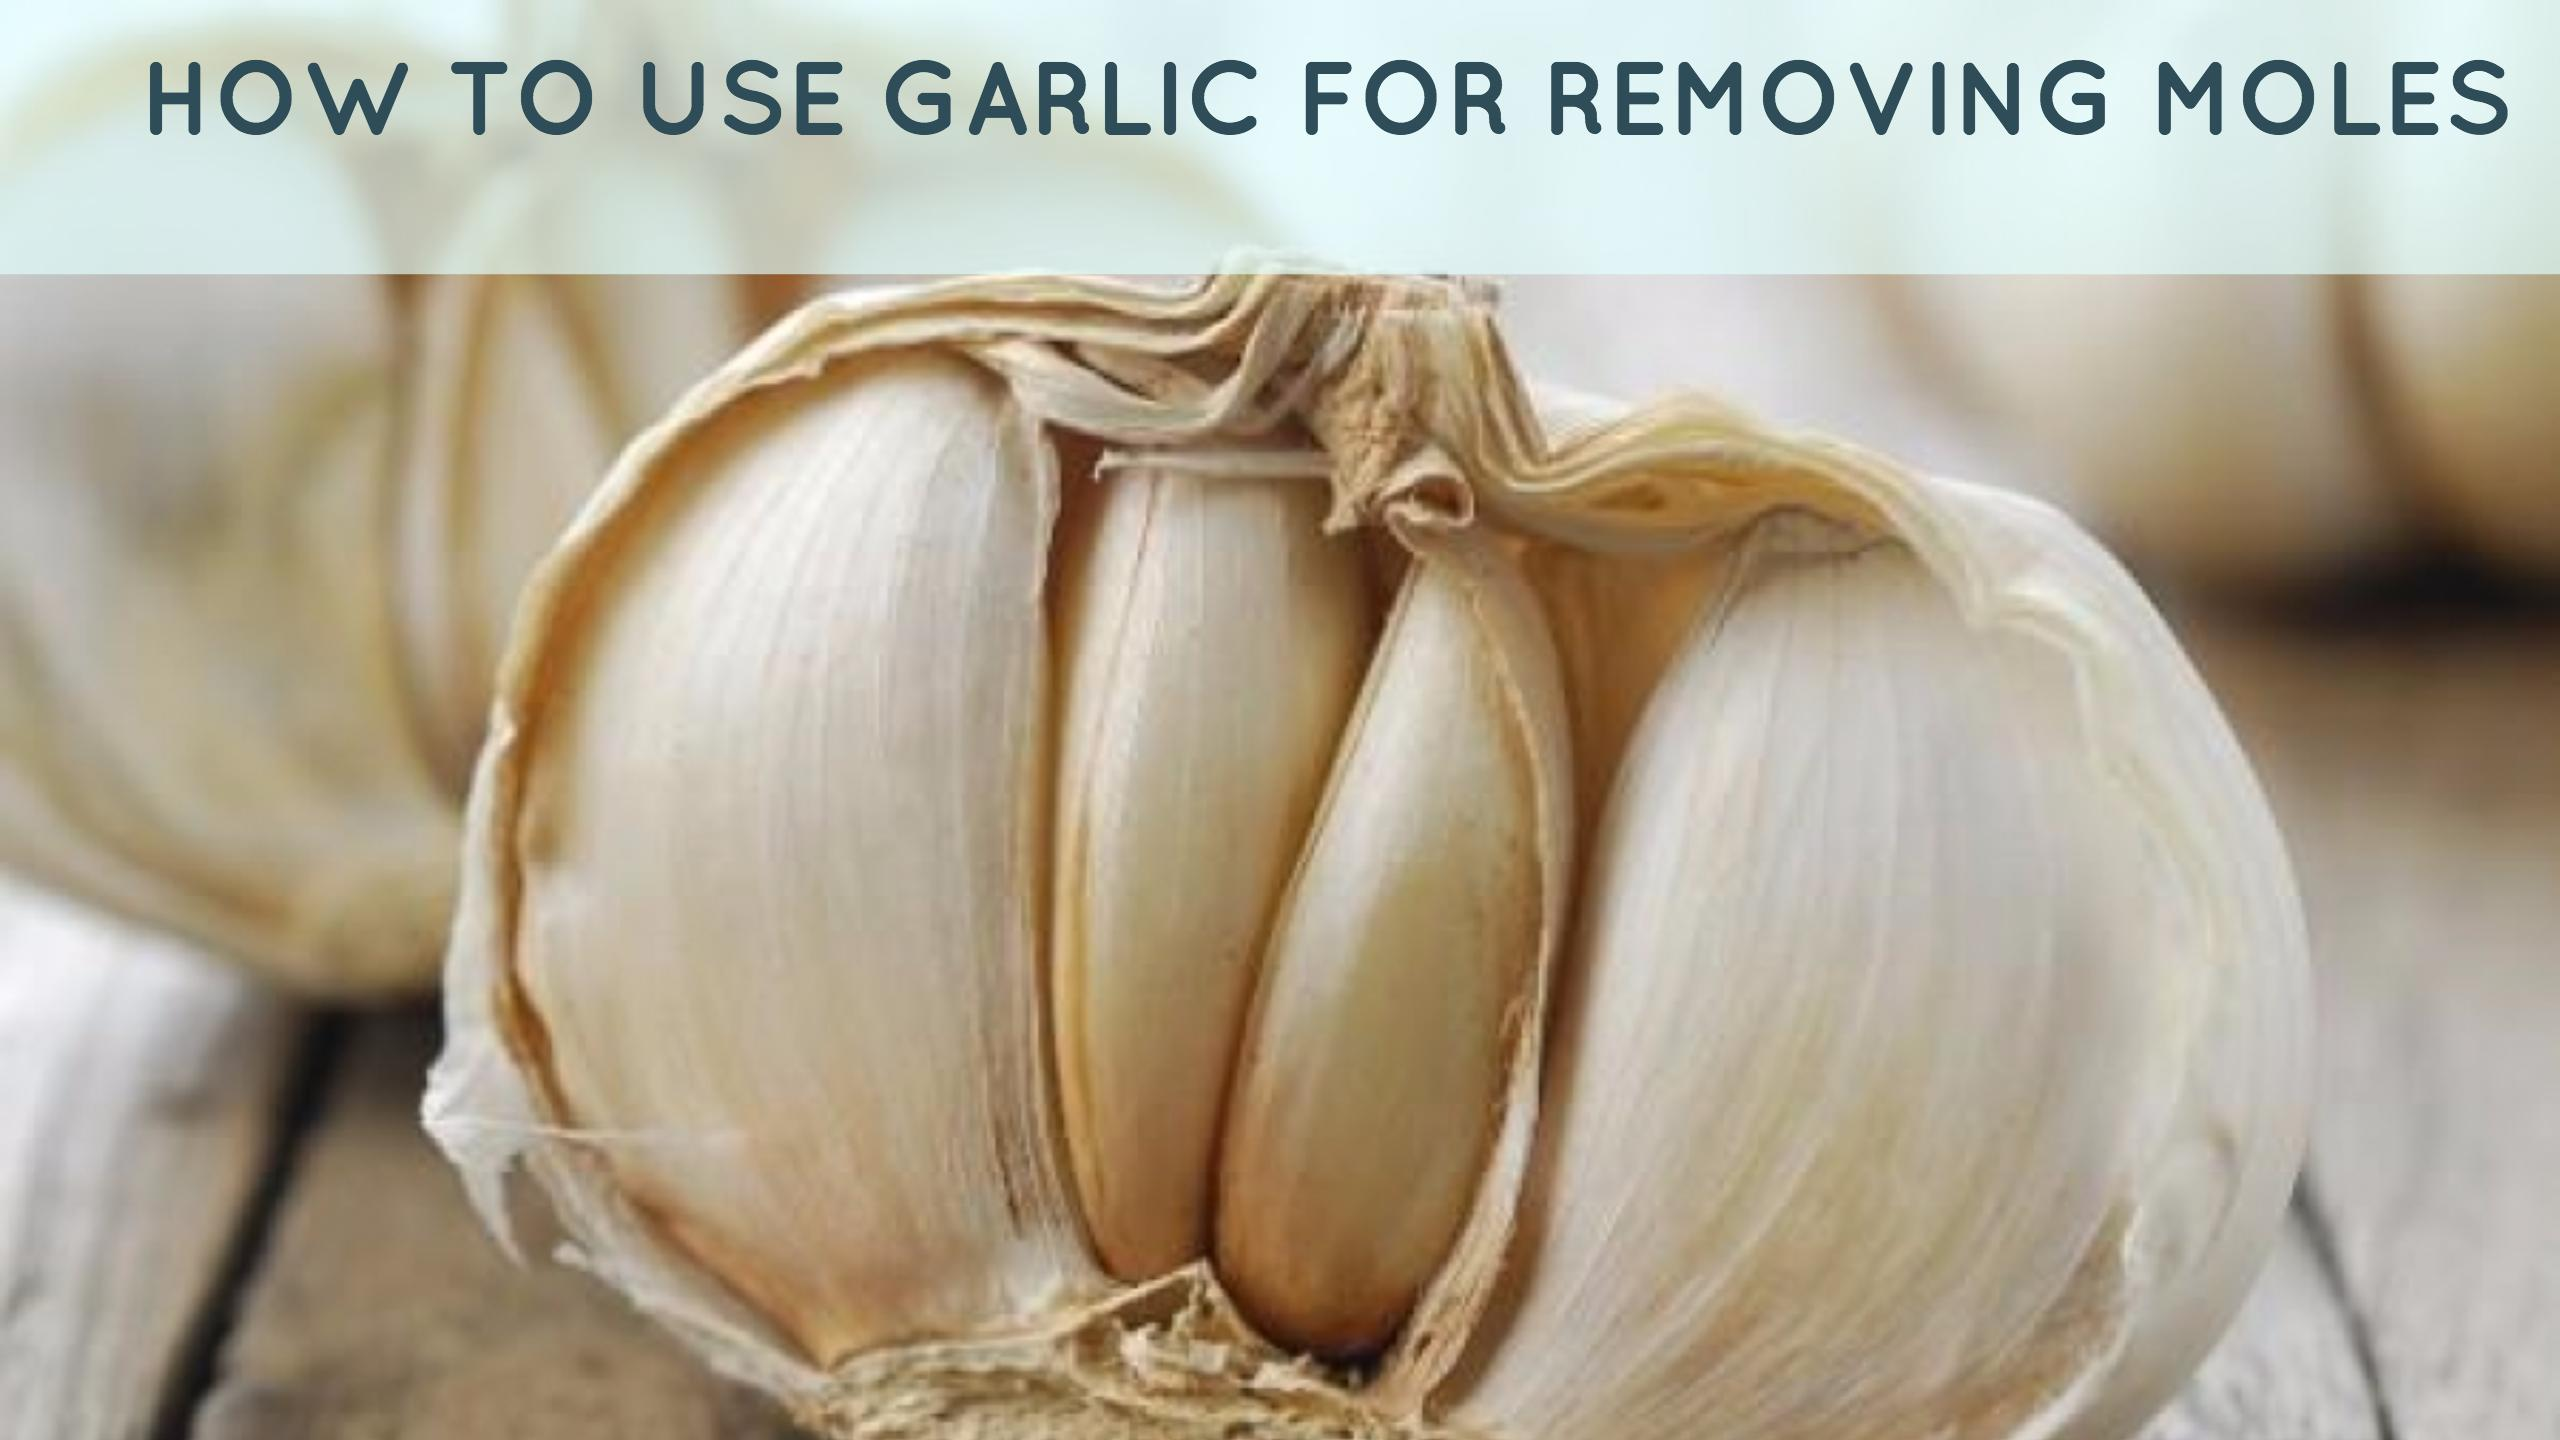 Garlic For Moles